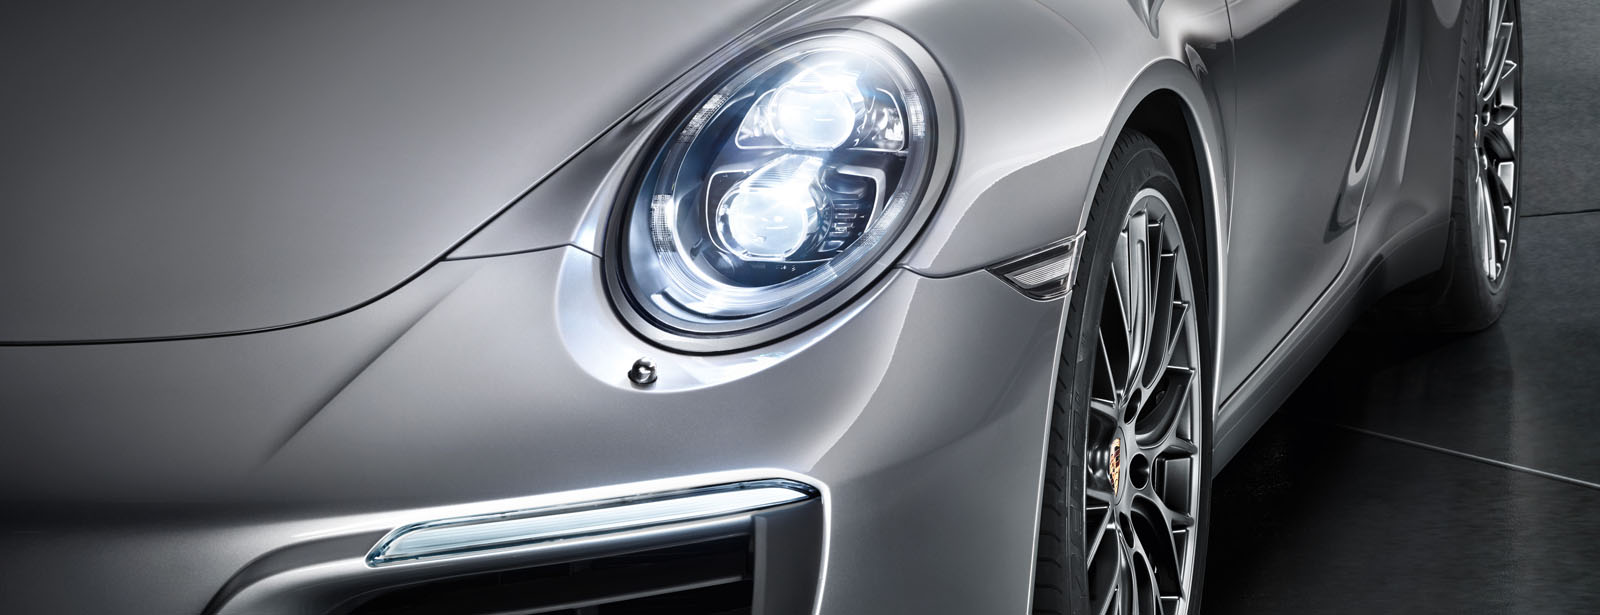 911 Porsche Dynamic Light System (PDLS)